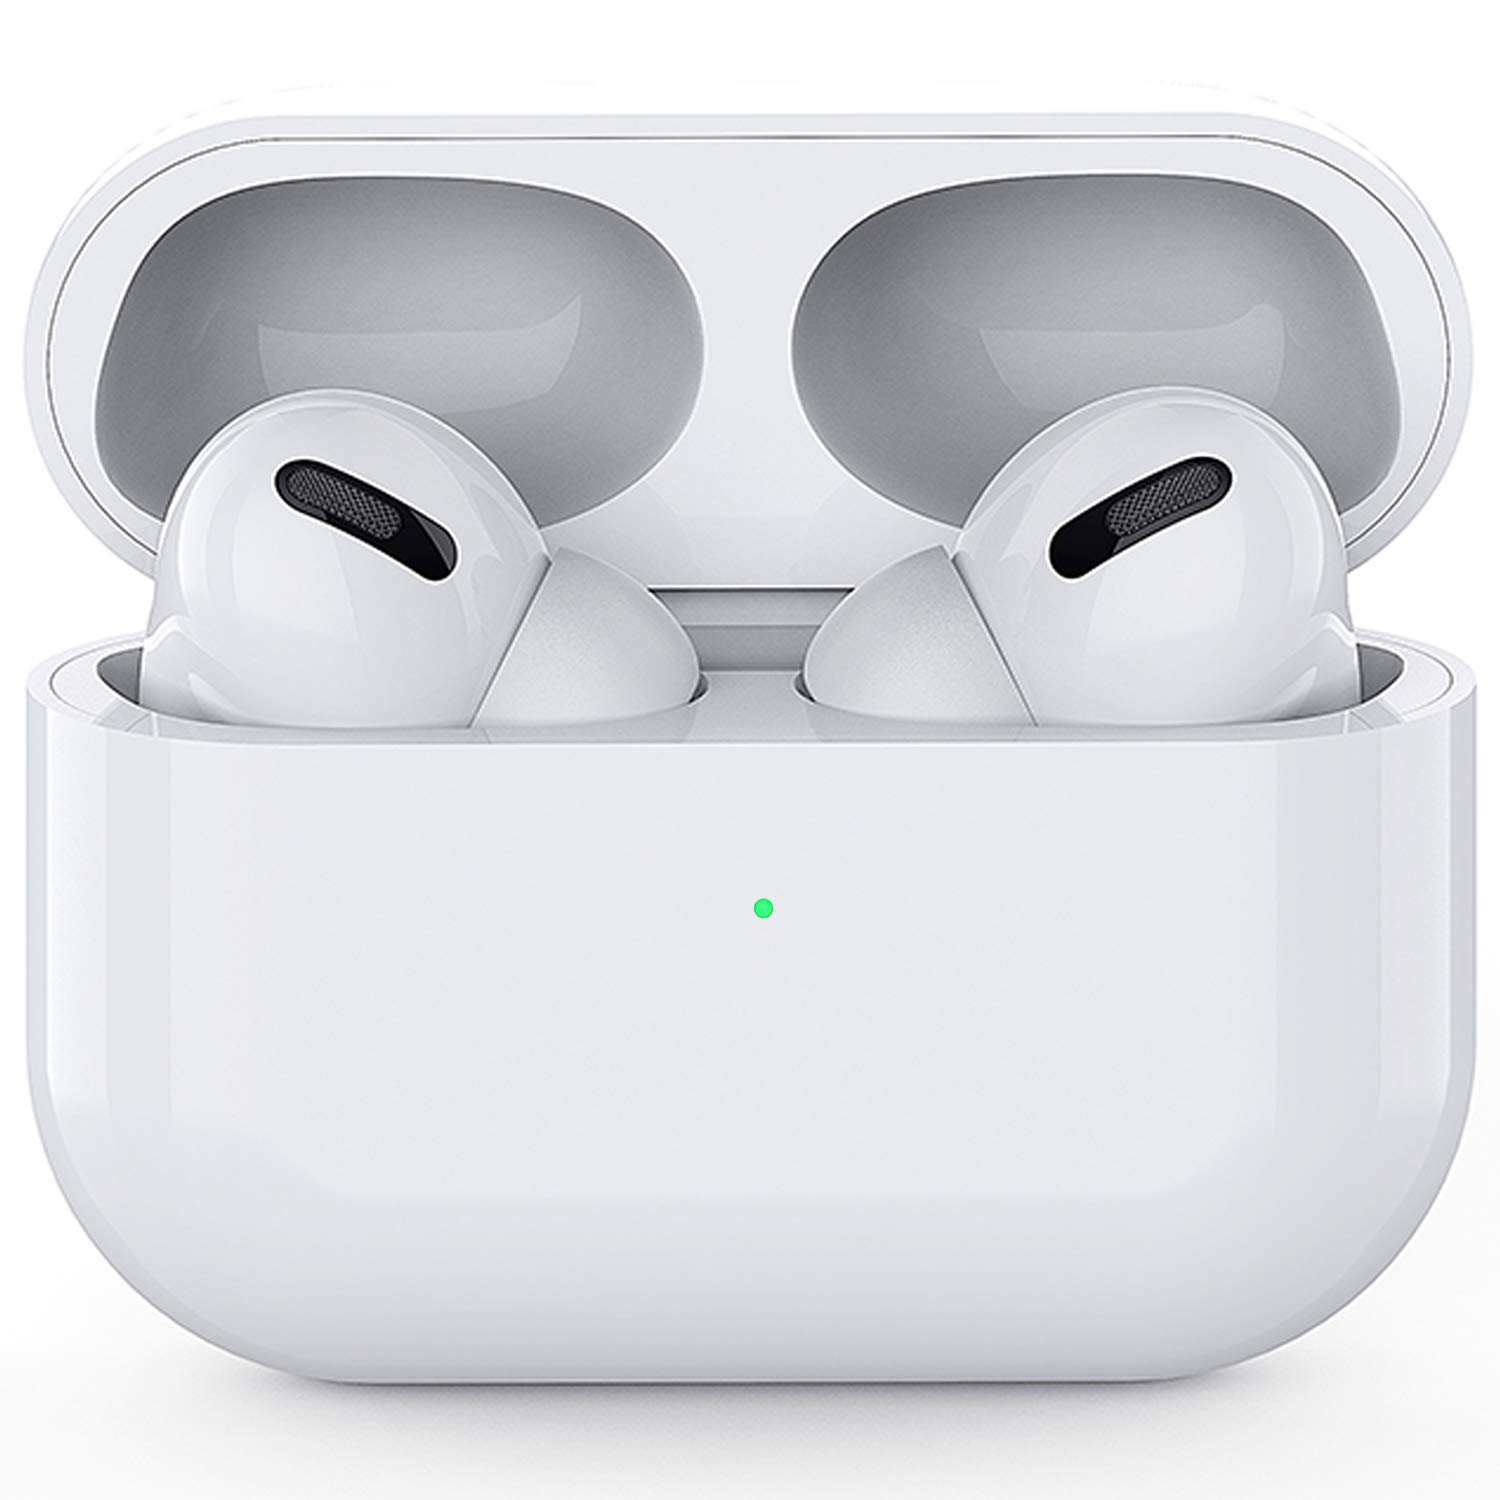 Wireless Earbuds Headphones Bluetooth 5.0 Earbuds with Mic Smart Noise Reduction (Fast Charging Case) Auto Pairing in-Ear ...